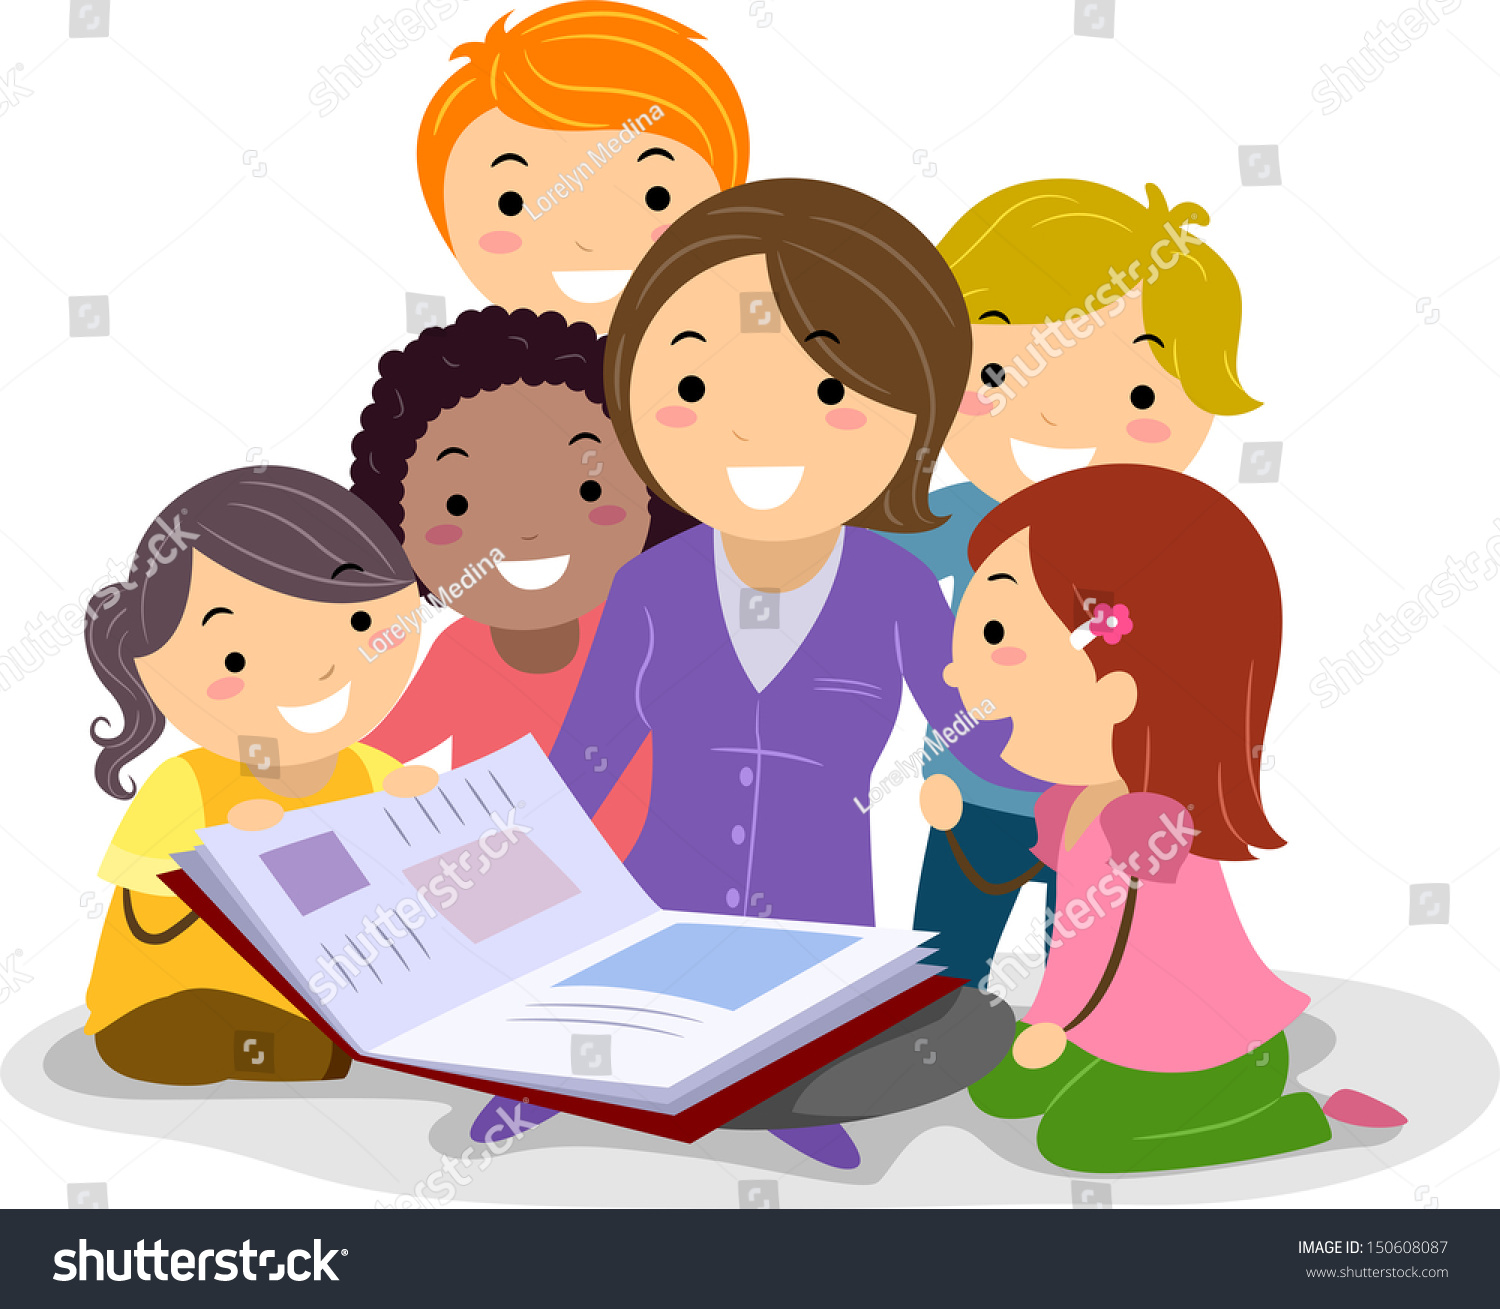 Stickman Illustration Featuring Kids Huddled Together Stock Vector 150608087